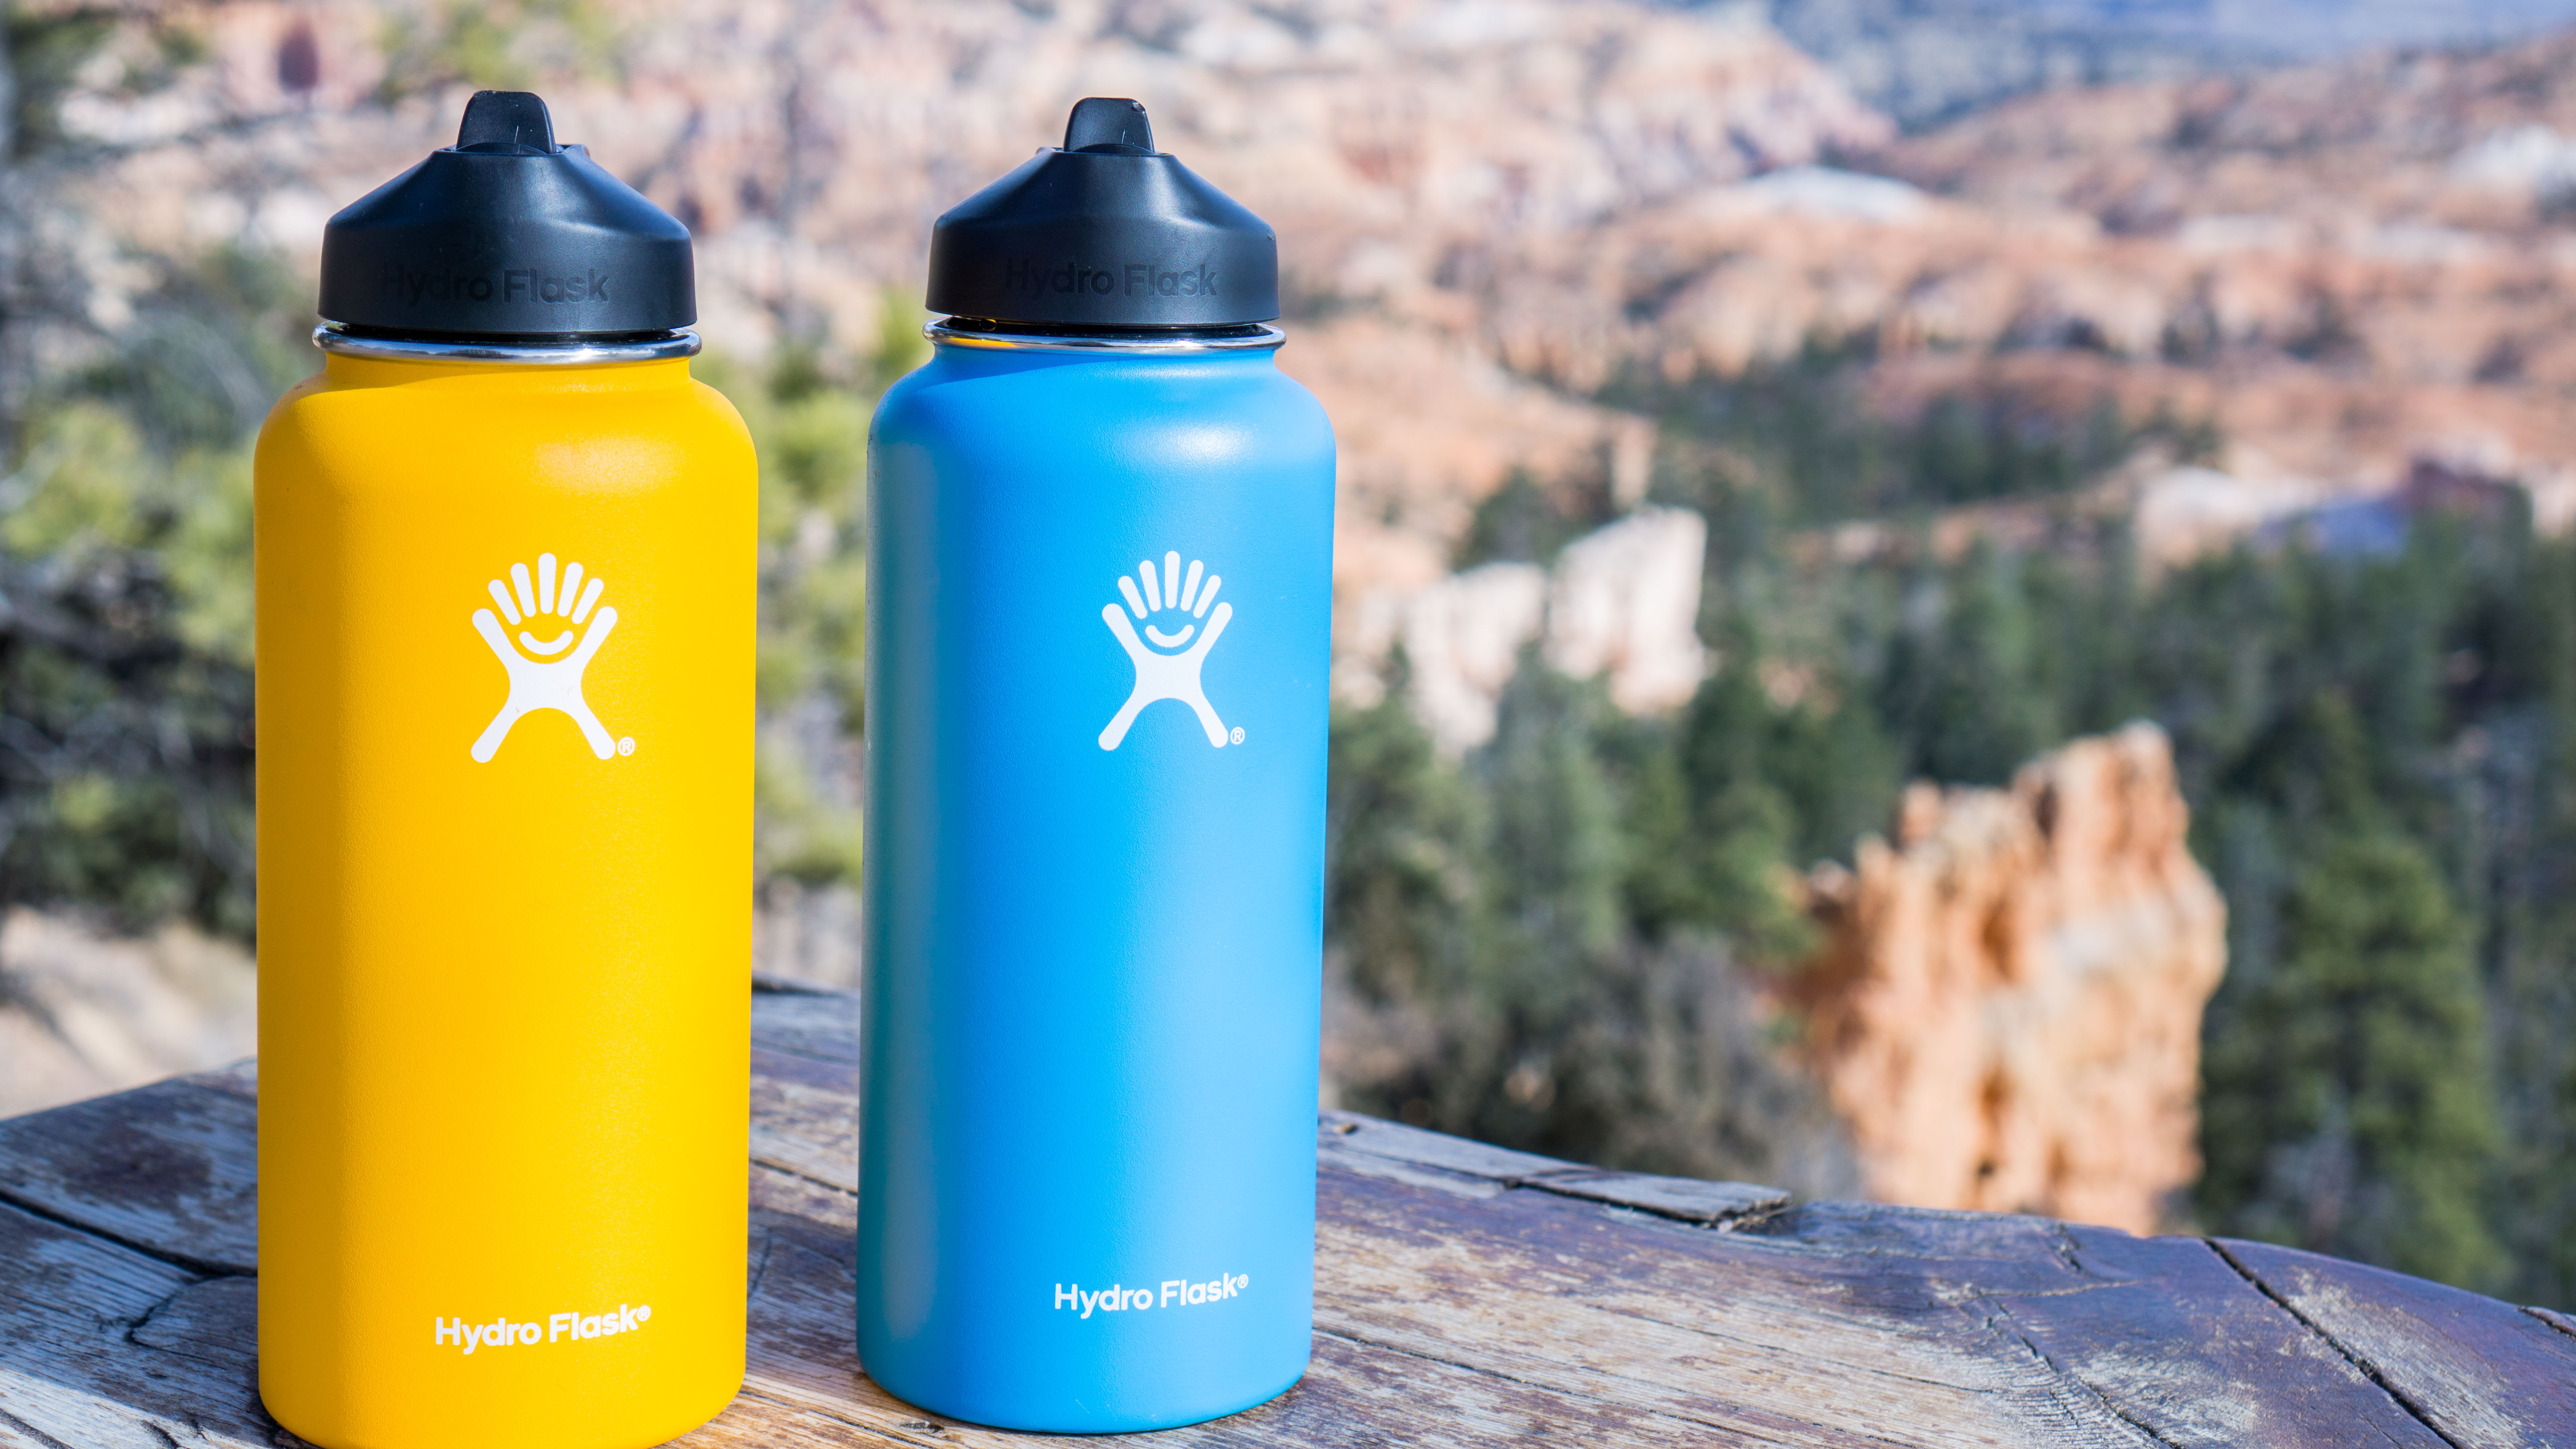 Hydro Flask | Adventure Bundle: Make yourself a friend